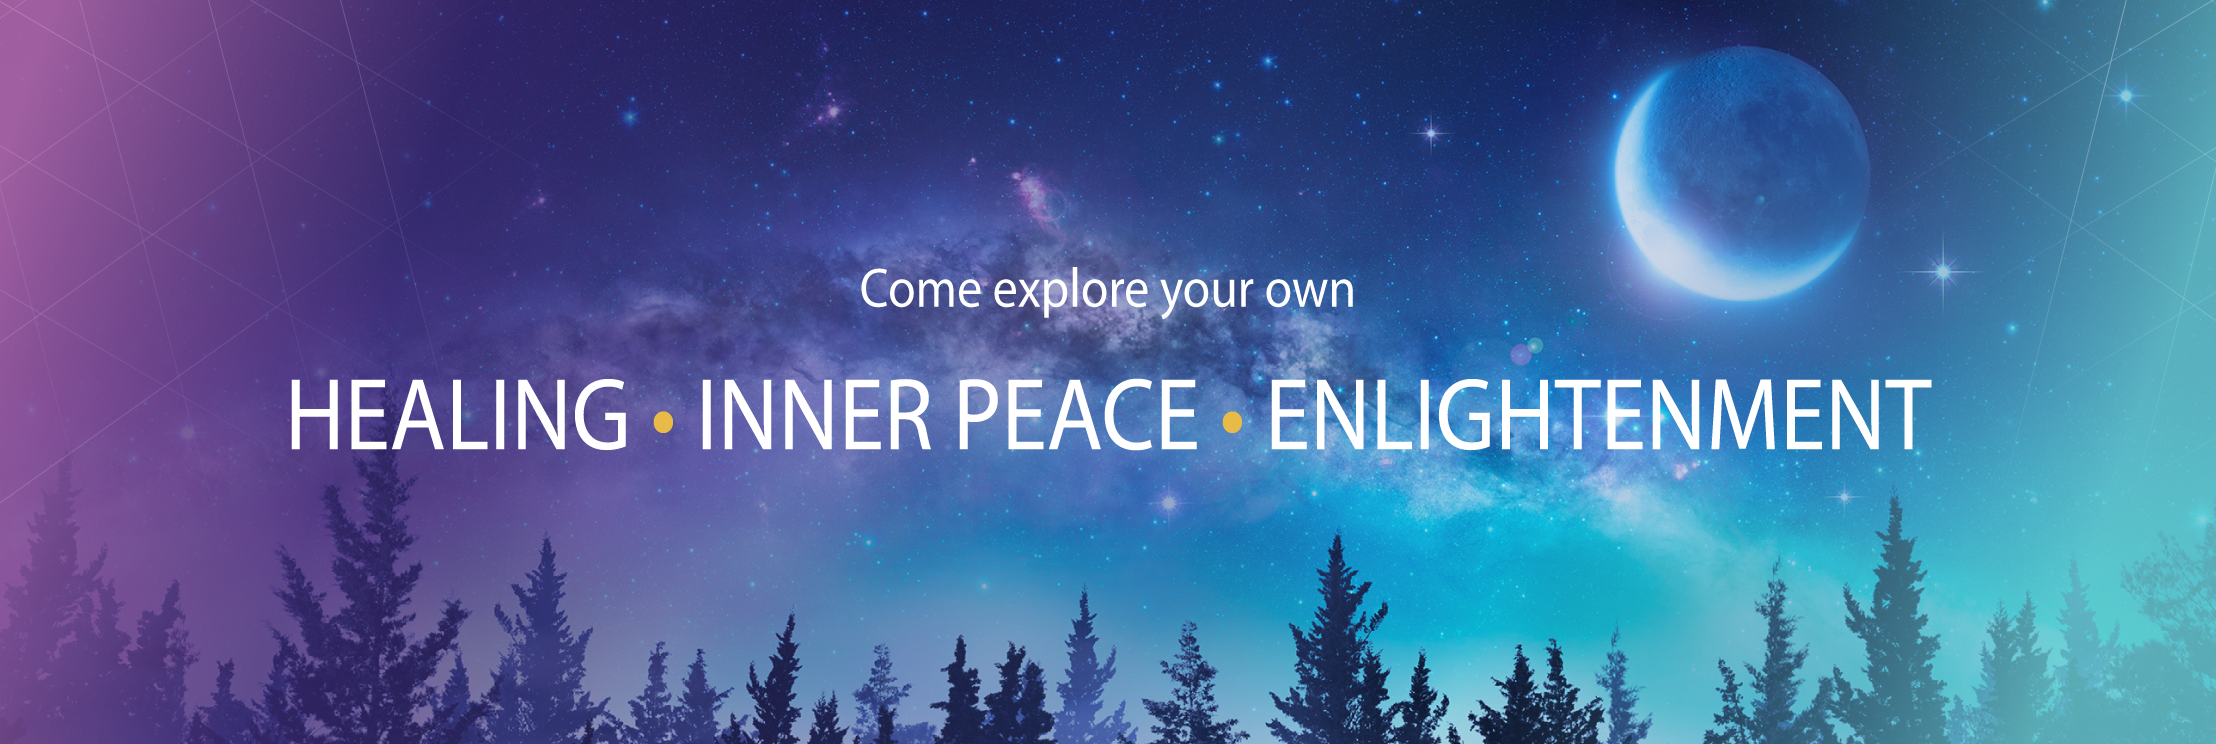 Come Explore Your Own Healing, Inner Peace, and Enlightenment